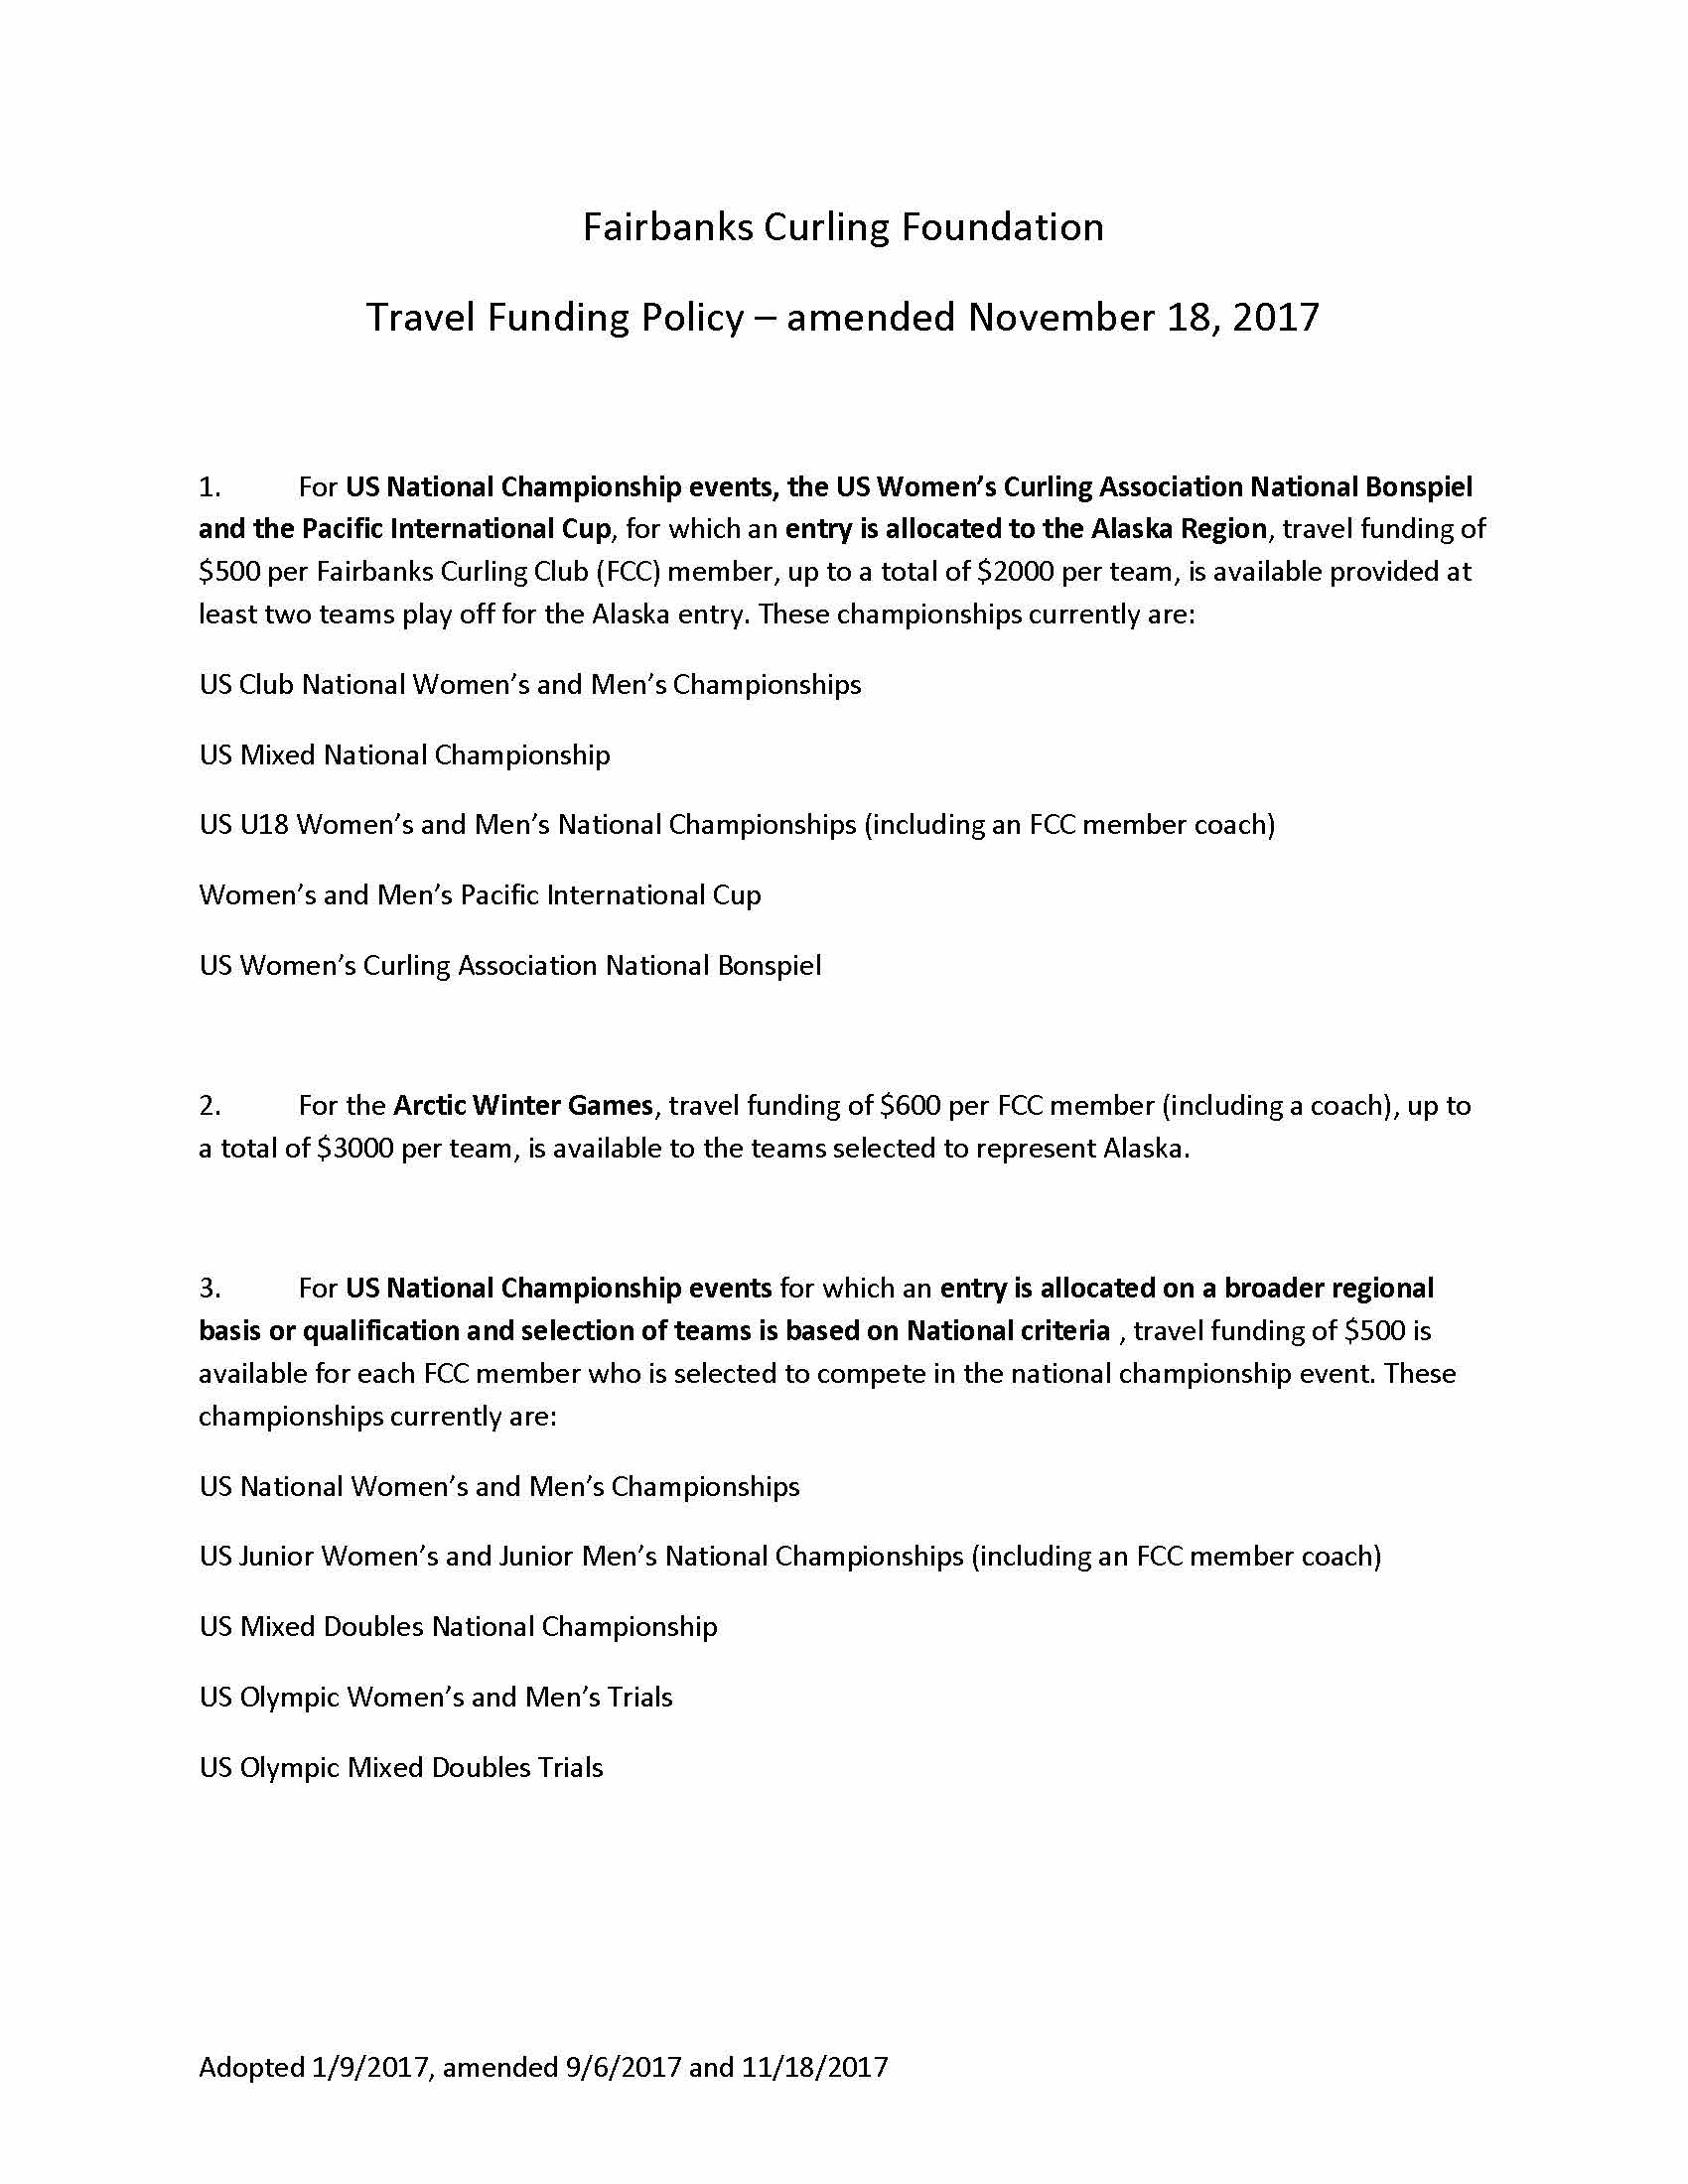 travel_funding_policy_2017-11-18.jpg